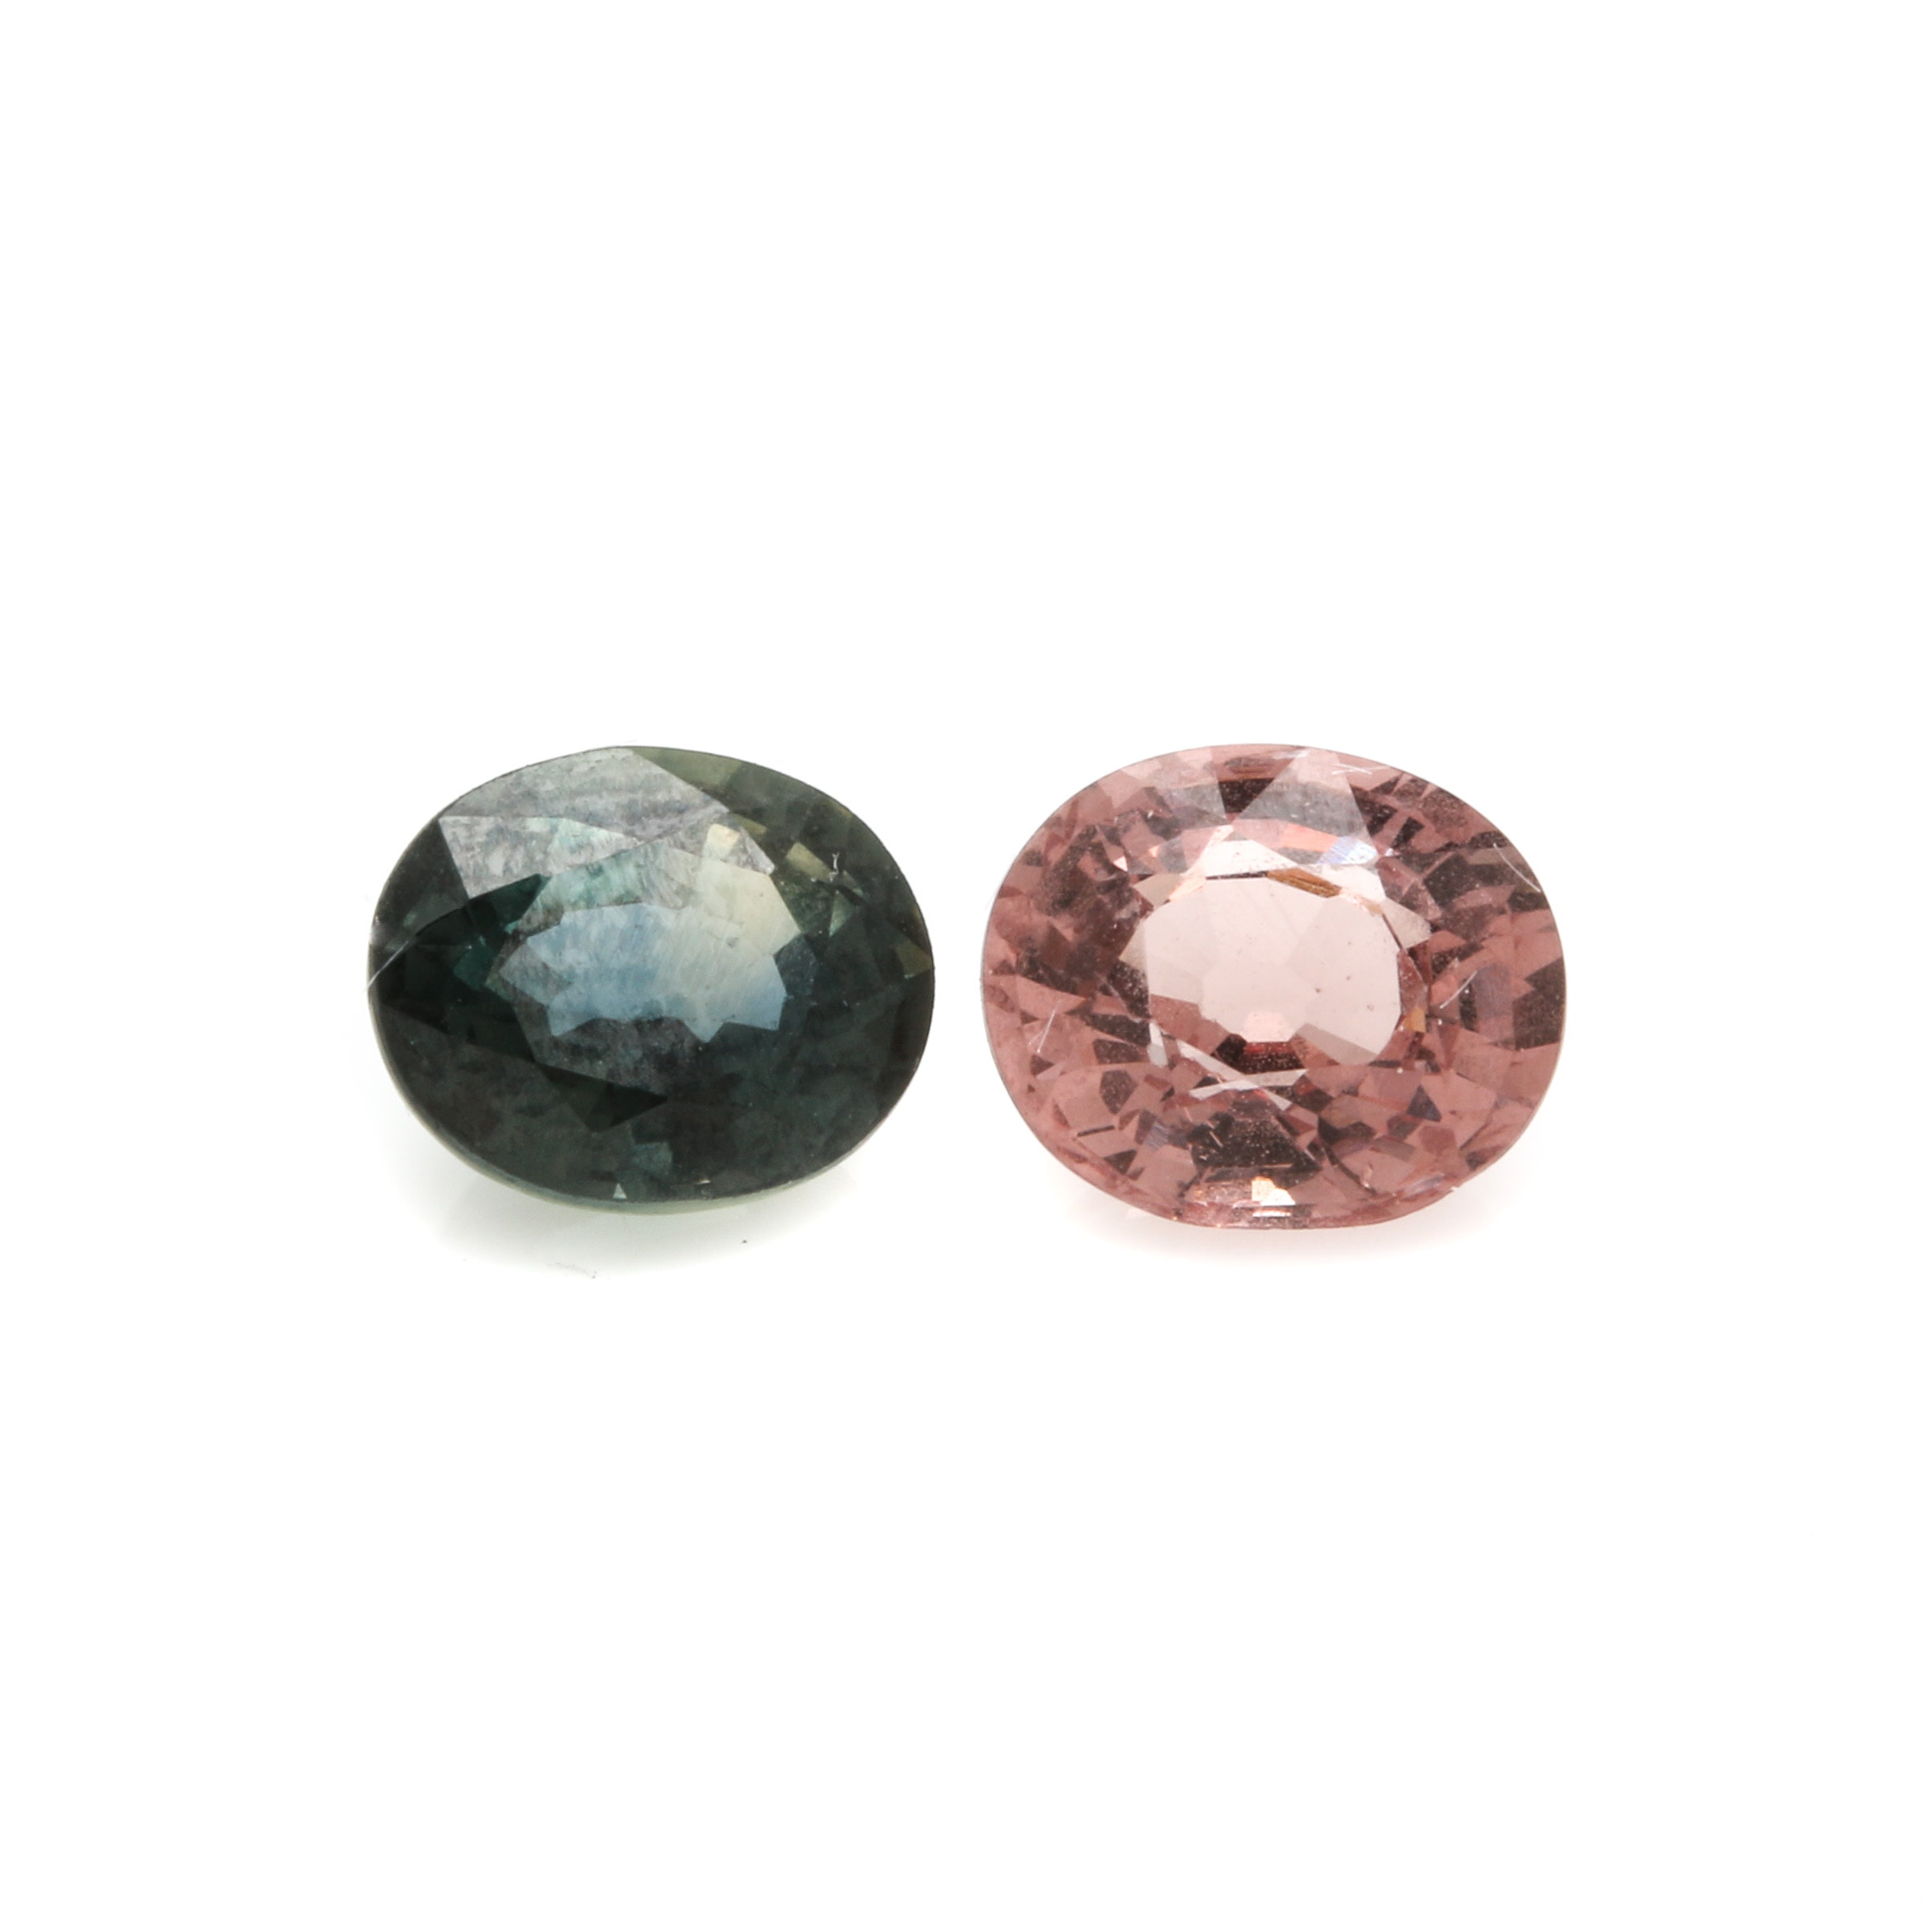 Selection of Loose 1.07CT Pink Sapphire and 1.21 CT Color Change Sapphire